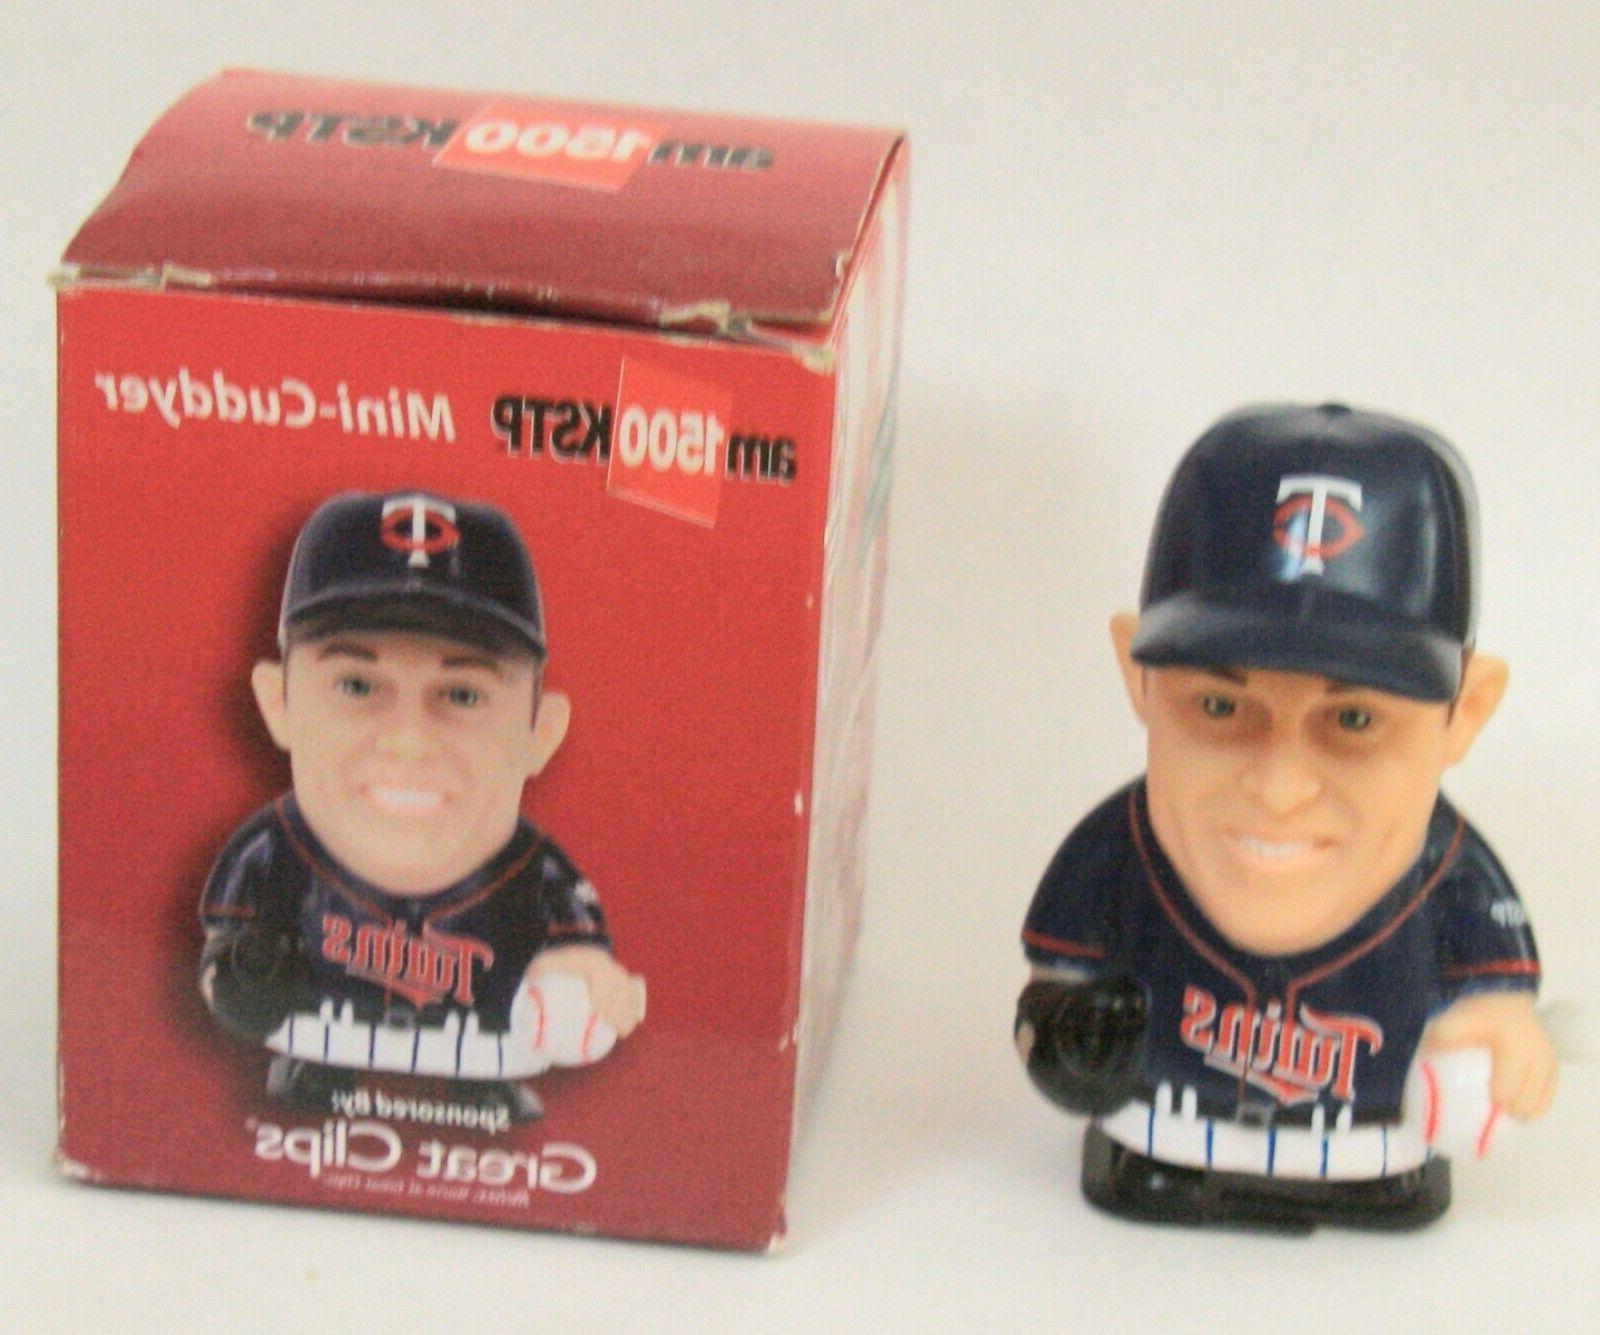 Vintage Minnesota Twins Cuddyer Mini toy figure